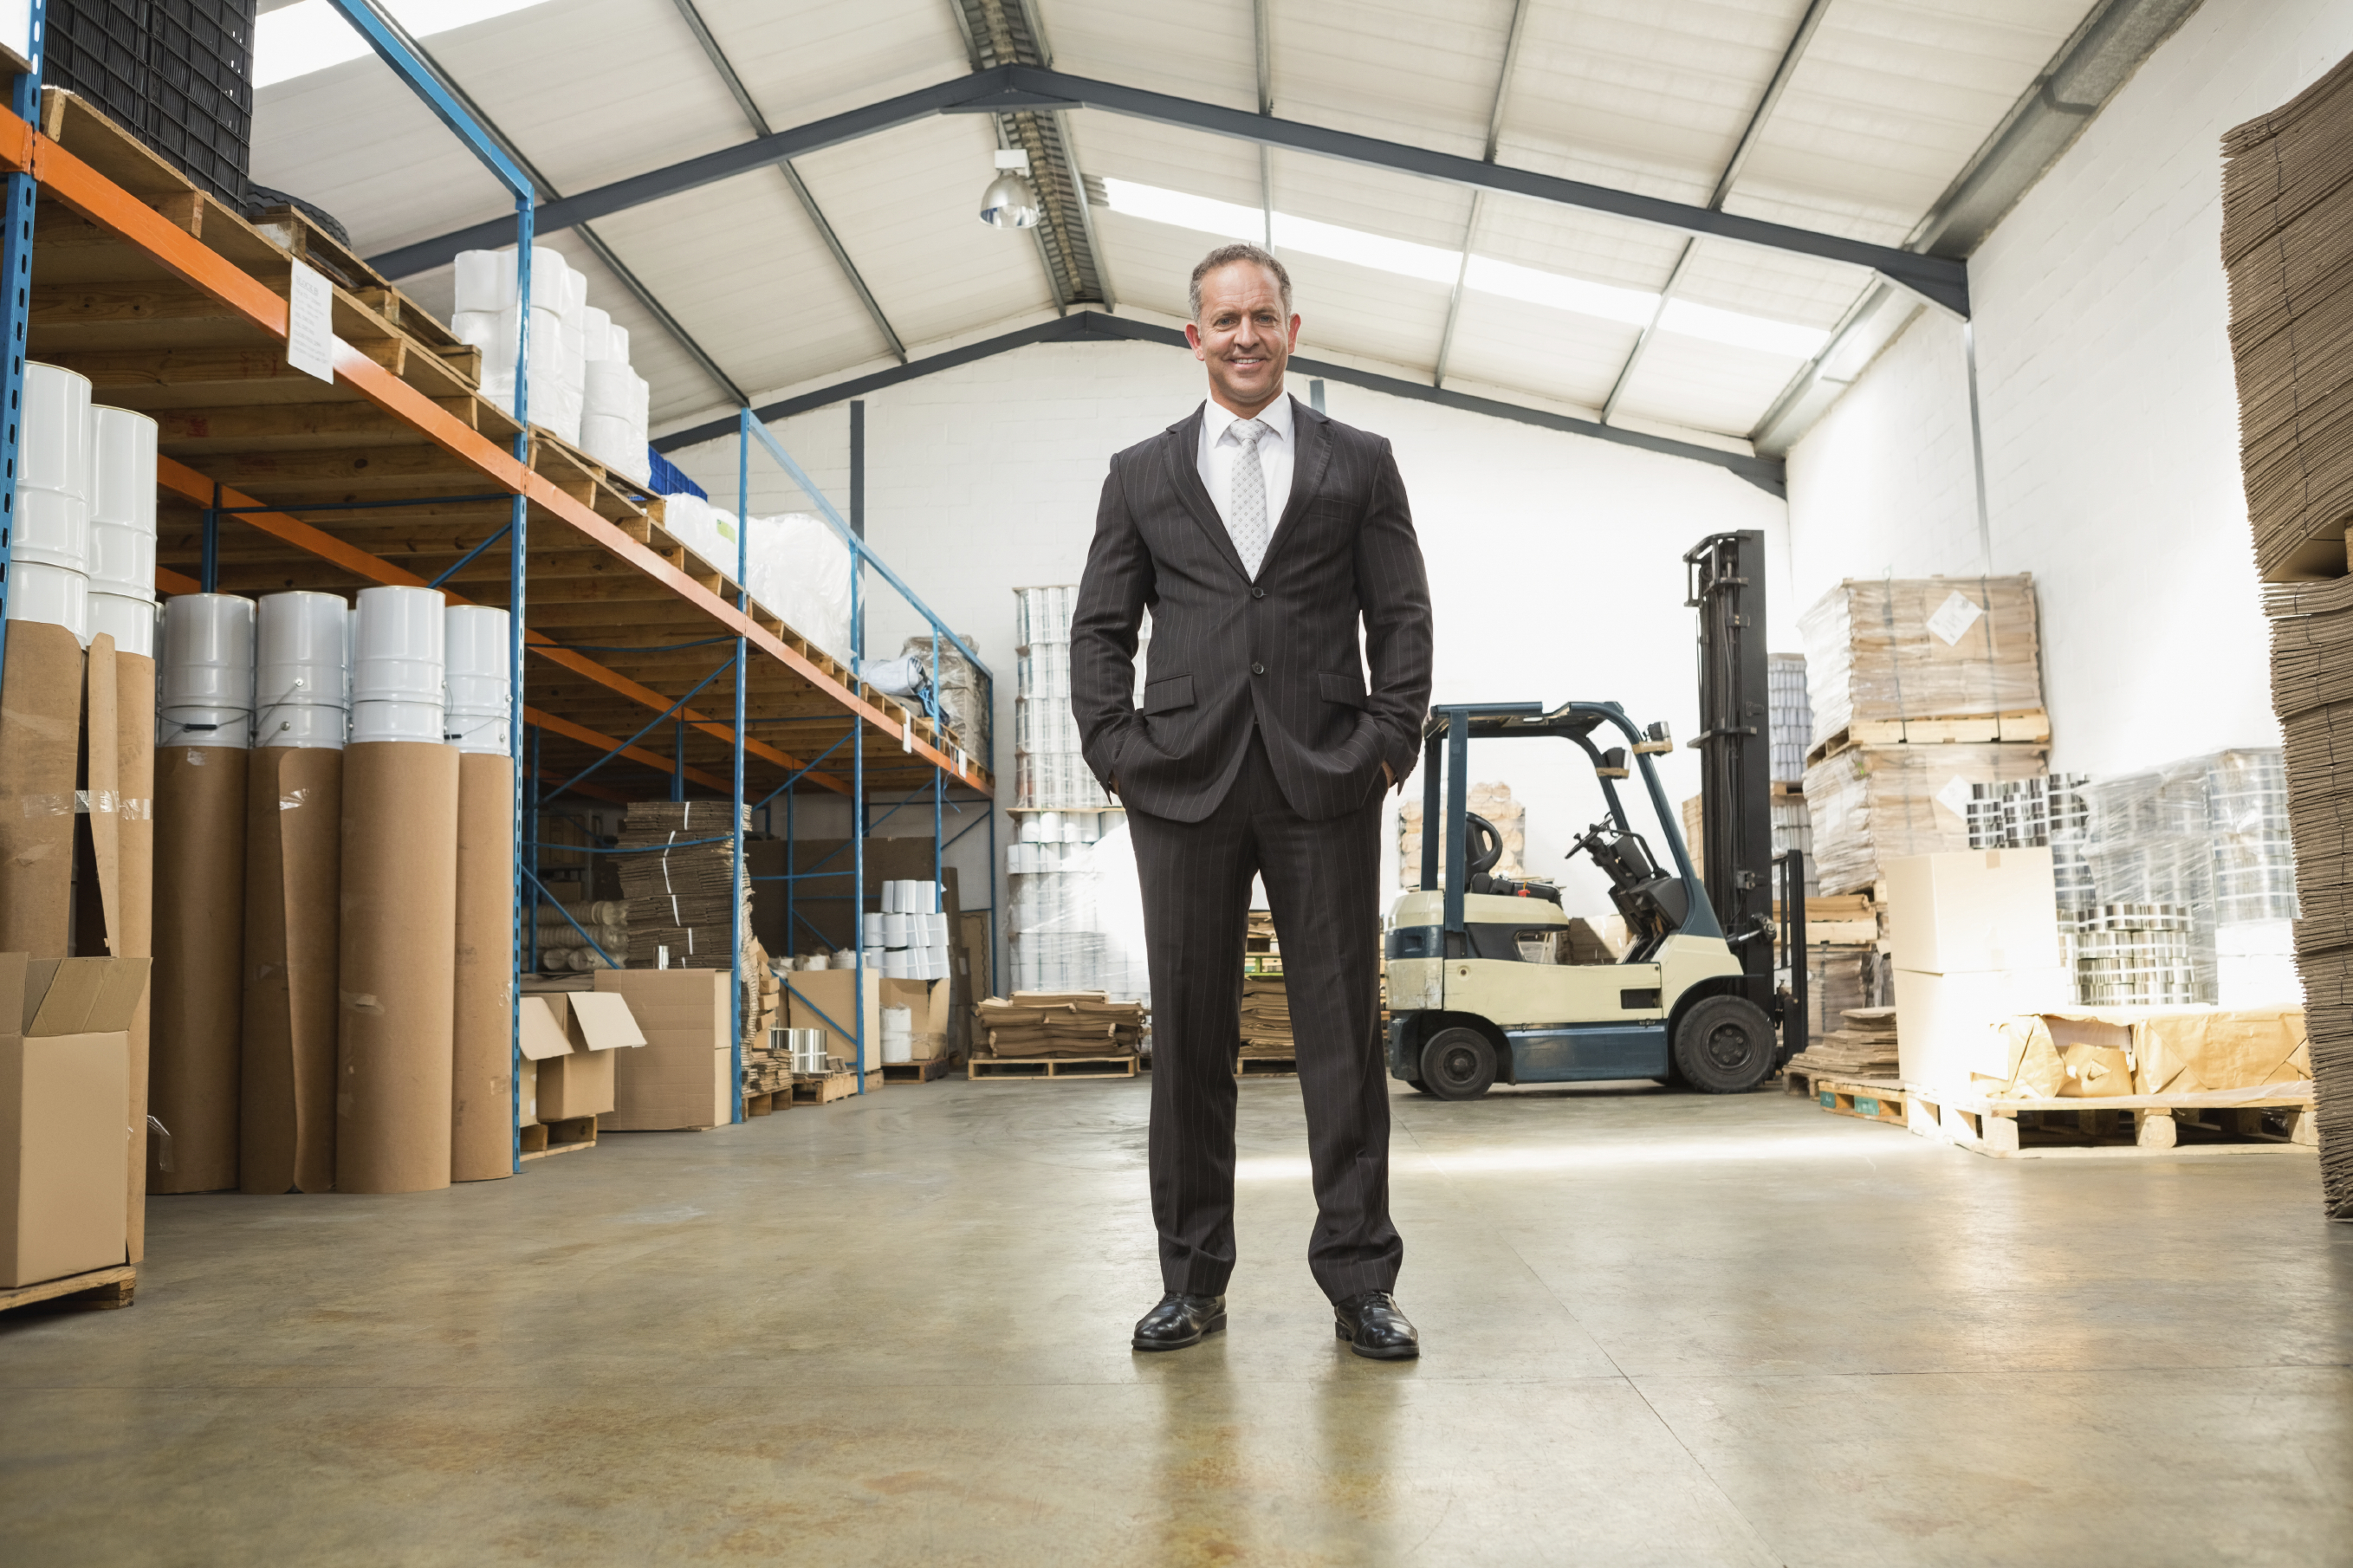 Accountancy services and tax advice for manufacturing and large industry